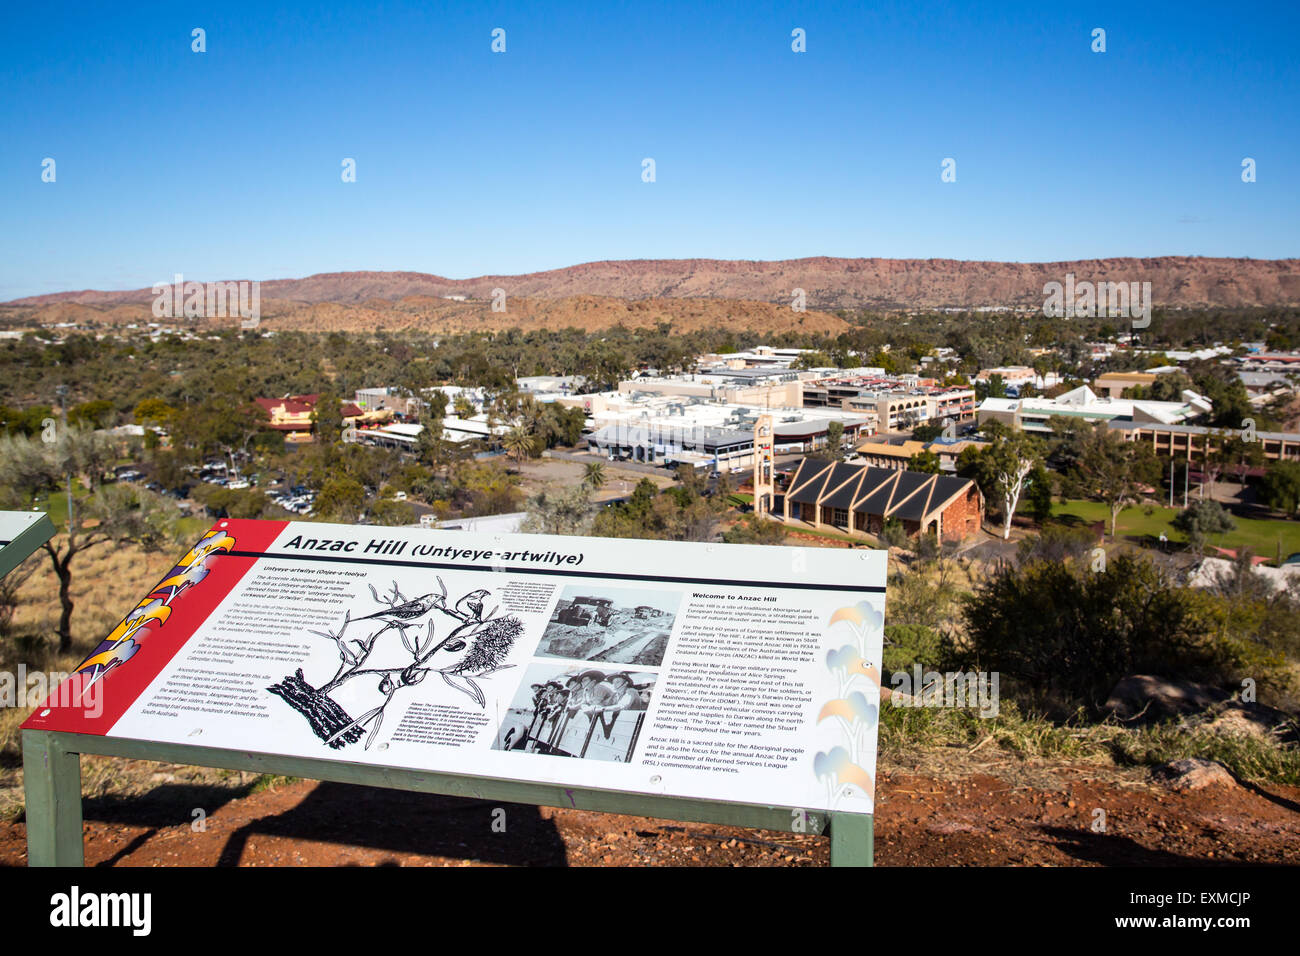 View from Anzac Hill with signage on a fine winter's day in Alice Springs, Northern Territory, Australia - Stock Image